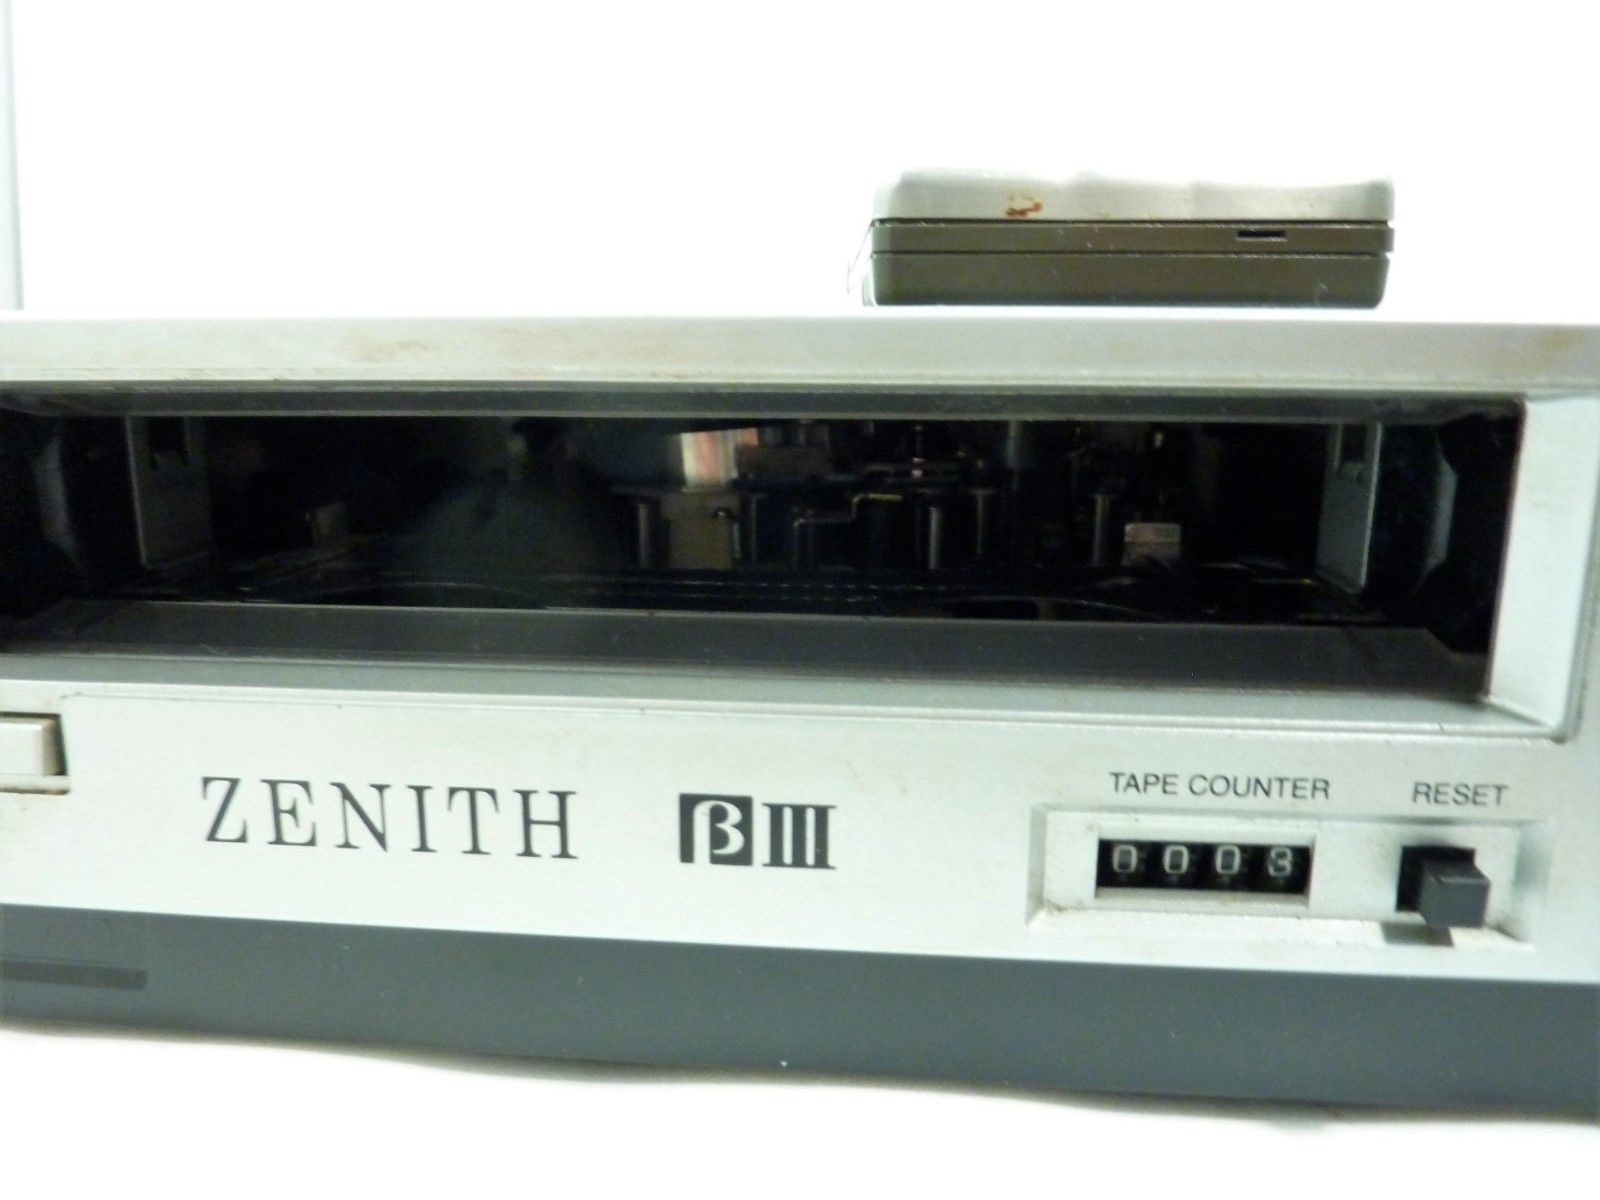 Vintage Zenith VR8510 Betamax Player Recorder for Parts